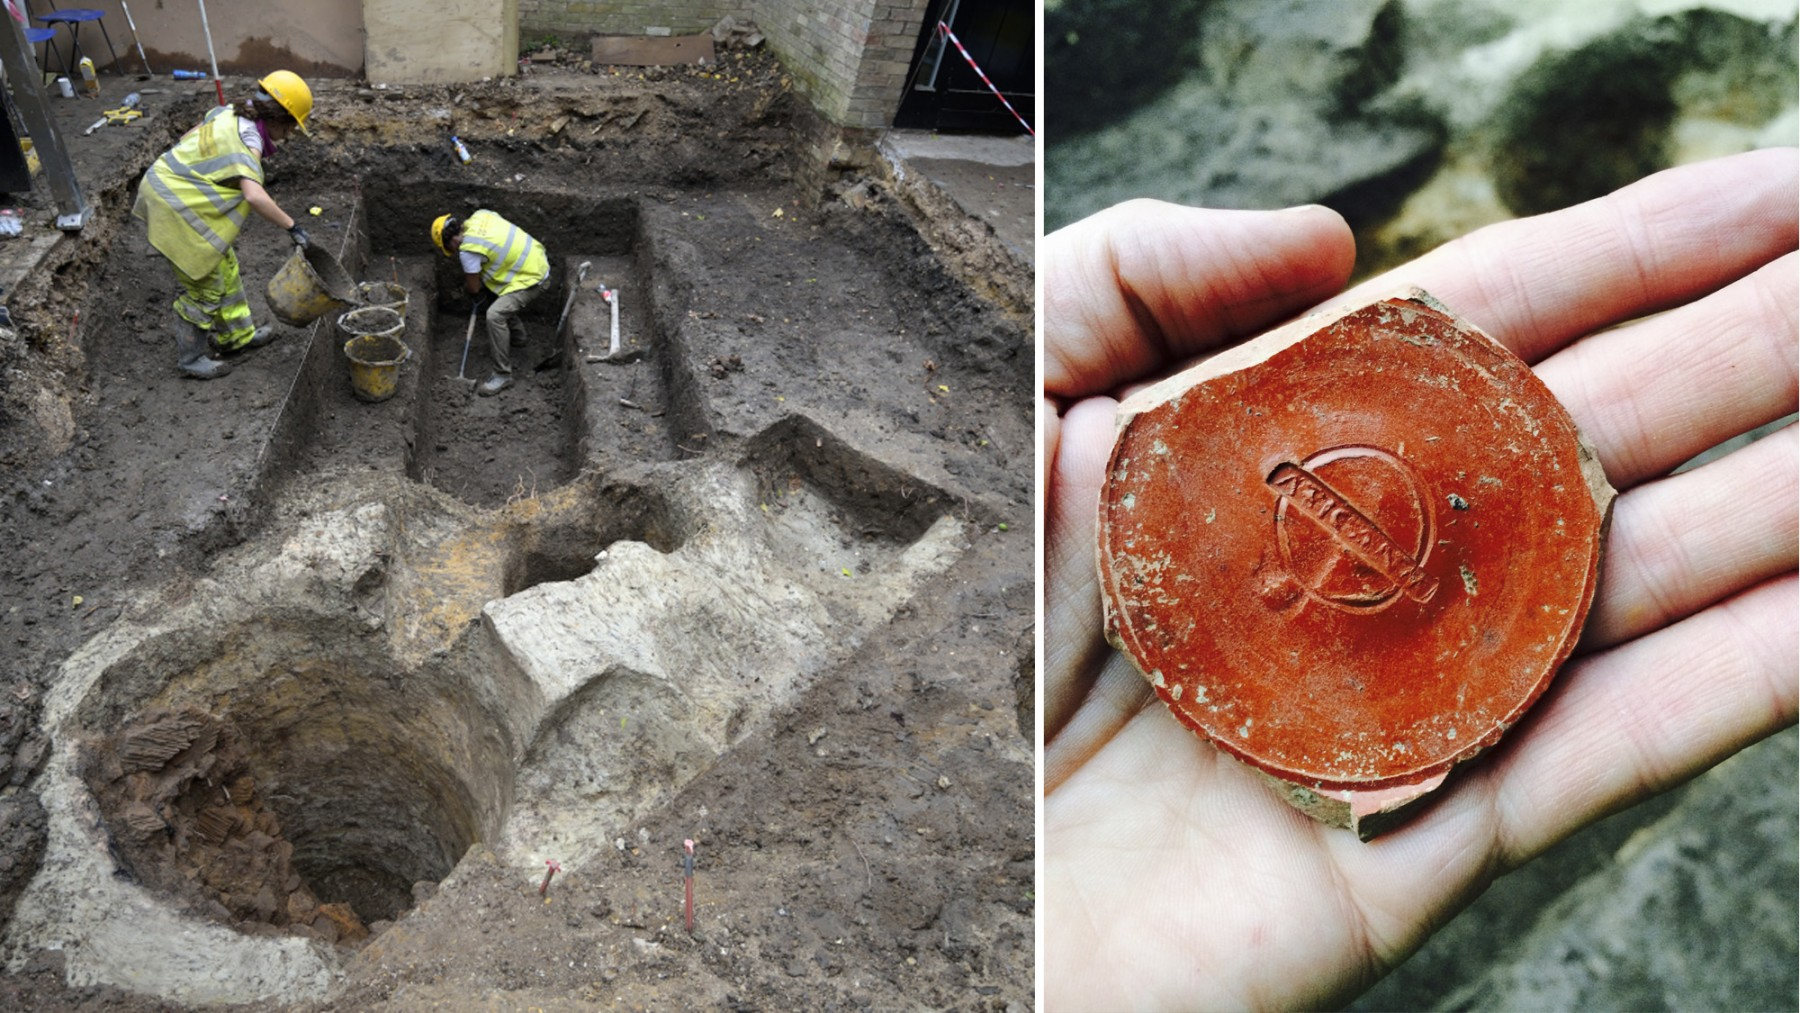 kettles-yard-gallery-on-site-courtyard-excavation-archaeology-jamie-fobert-architects-historic-building-cultural-project